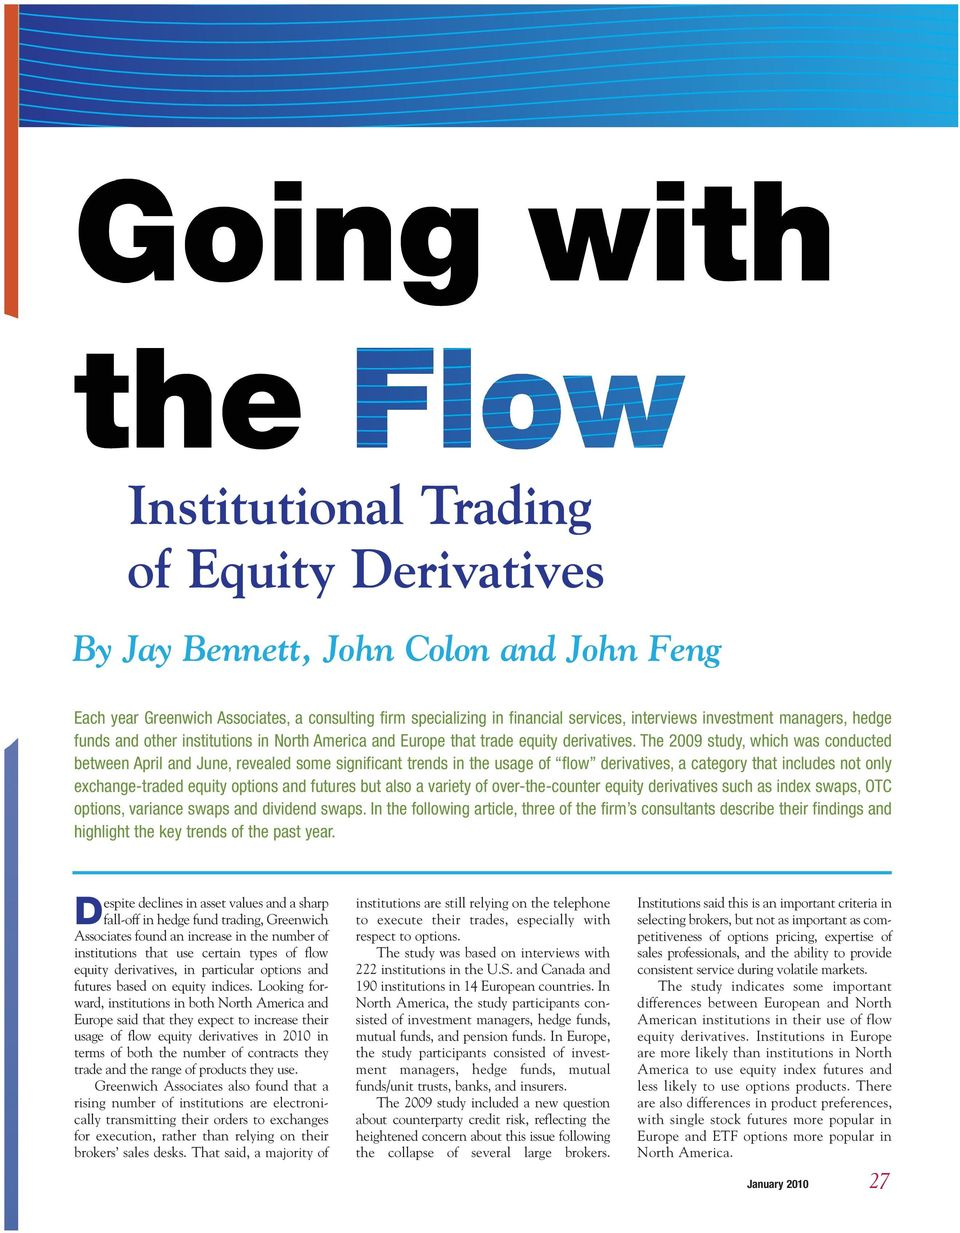 The 2009 study, which was conducted between April and June, revealed some significant trends in the usage of flow derivatives, a category that includes not only exchange-traded equity options and